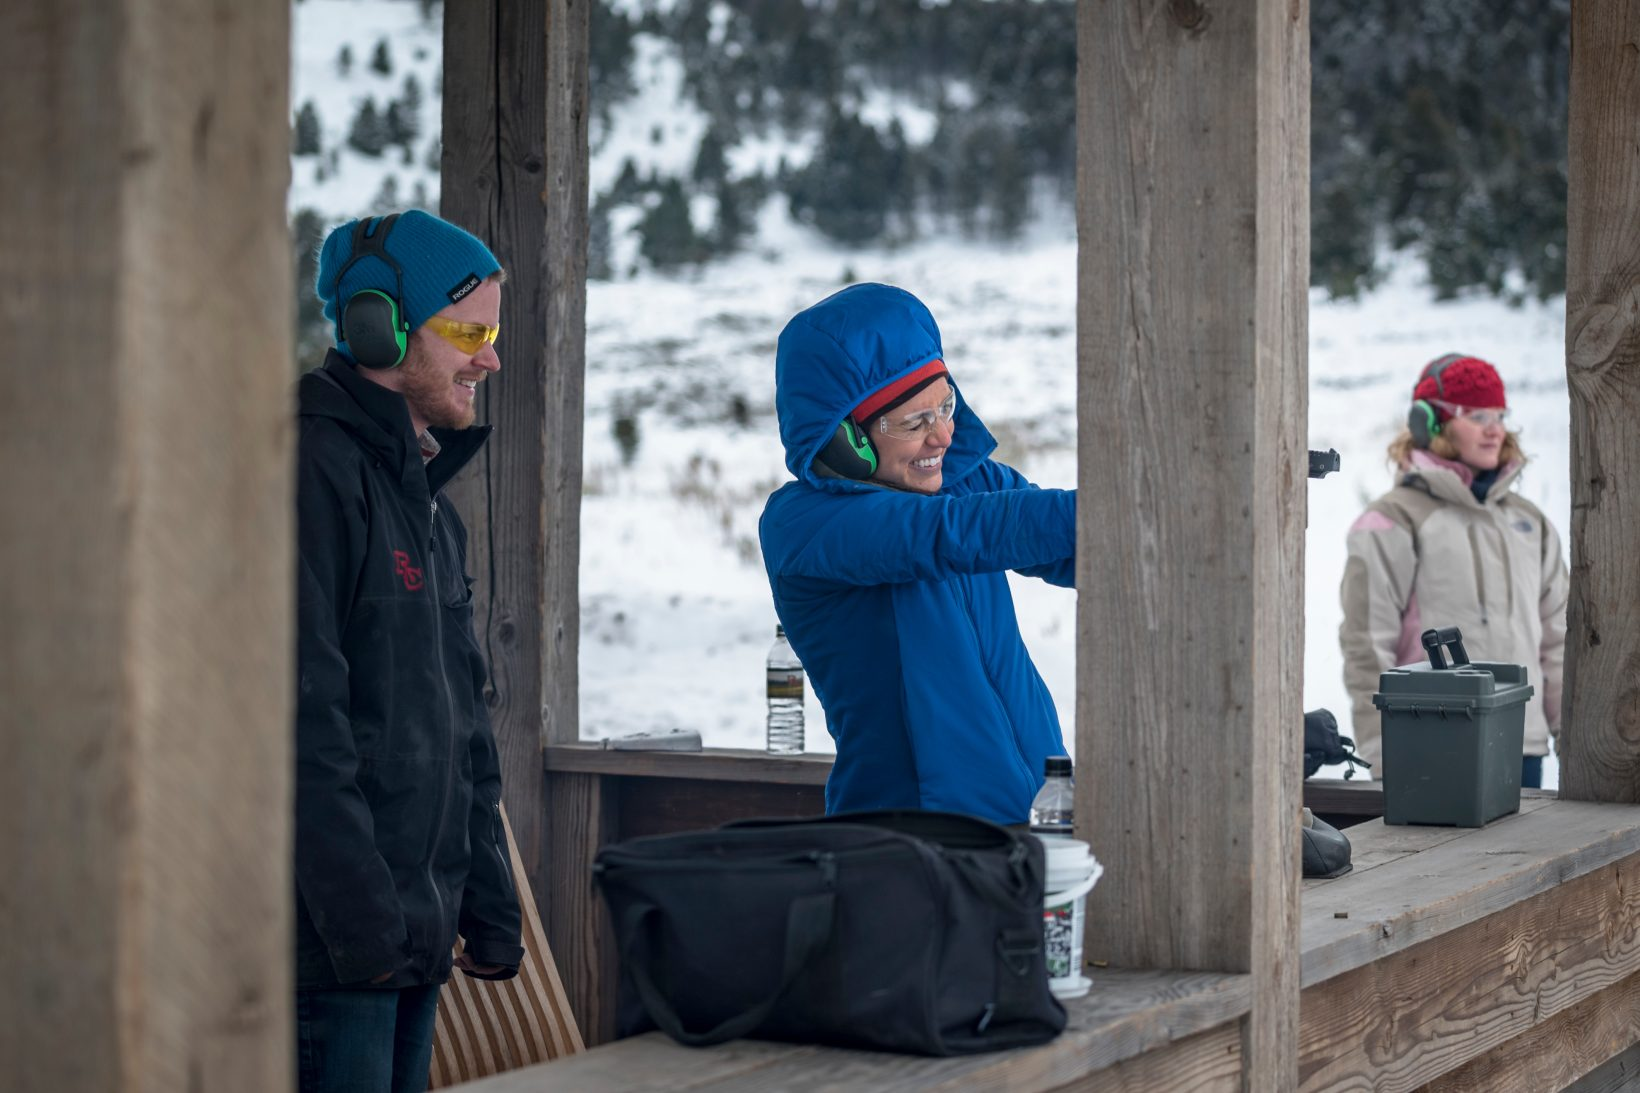 A Ranch guide teaches shooting at the rimfire range during a winter activity. Activities are part of the all-inclusive cost of a stay.